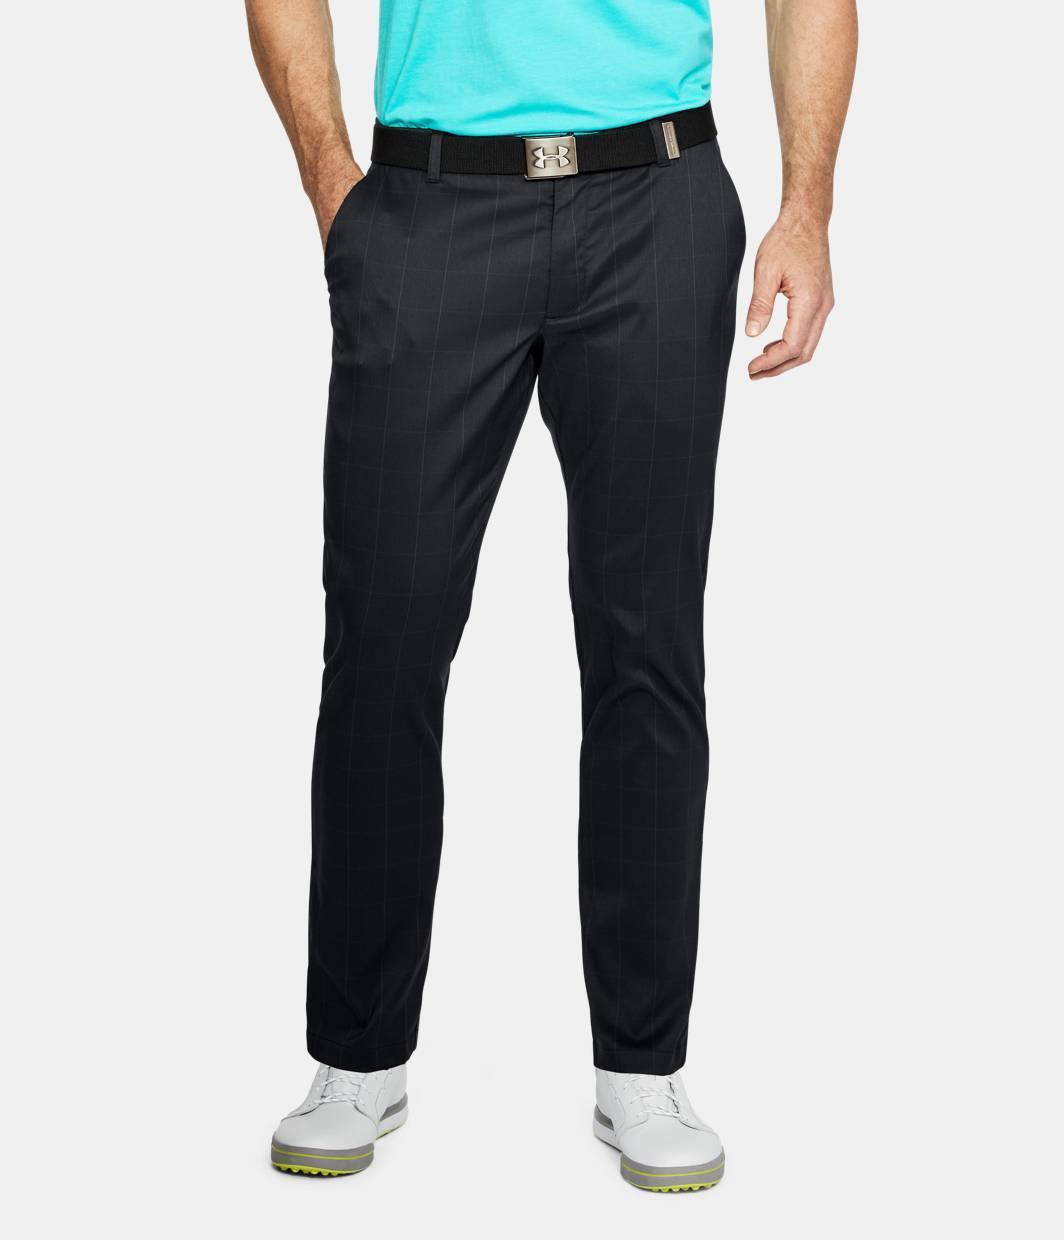 Under Armor Junior Mens Golf Pants